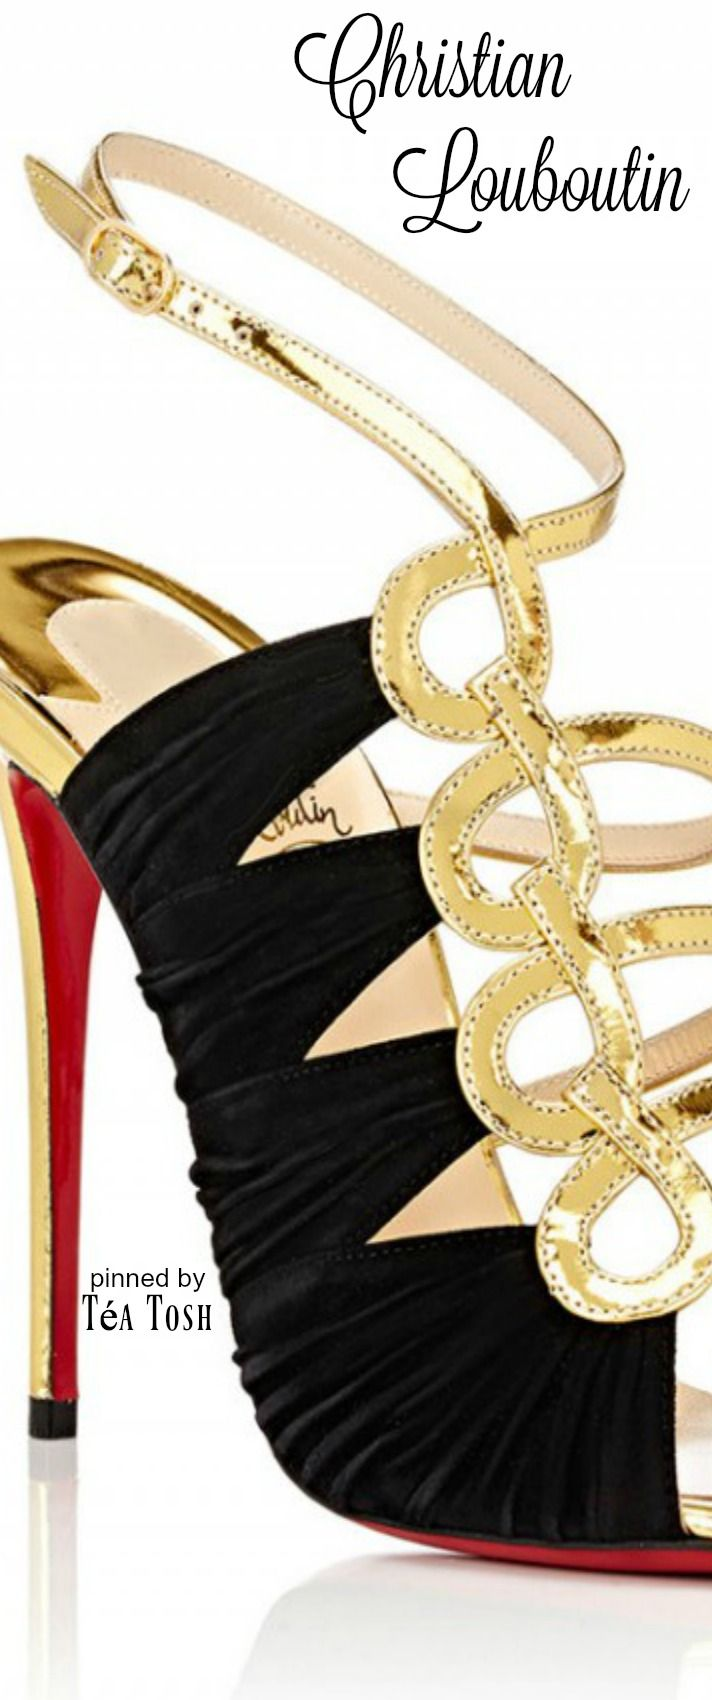 Omg I am absolutley dieing omg i really would love these Louboutin's